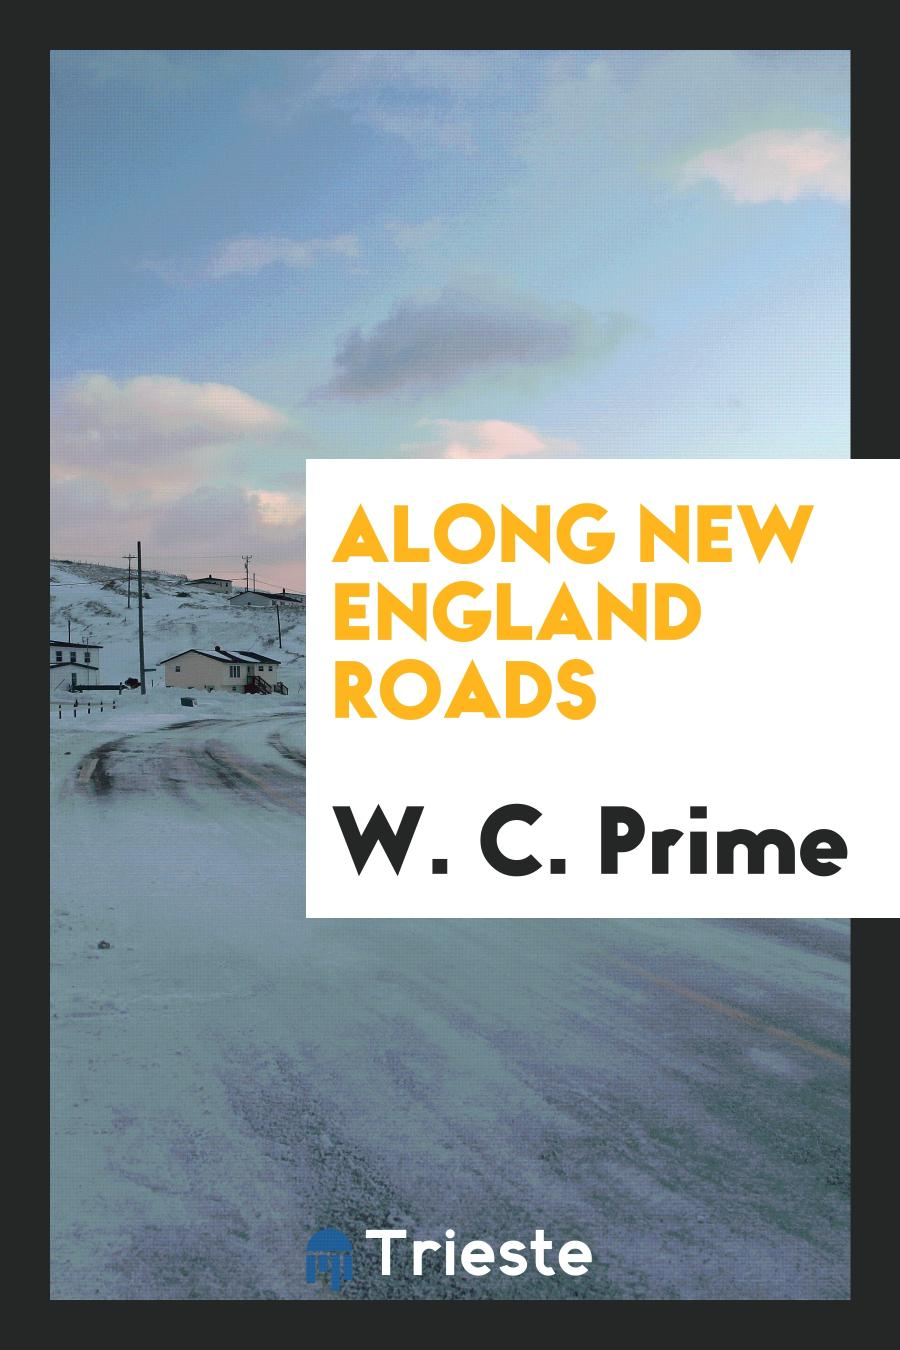 W. C. Prime - Along New England roads